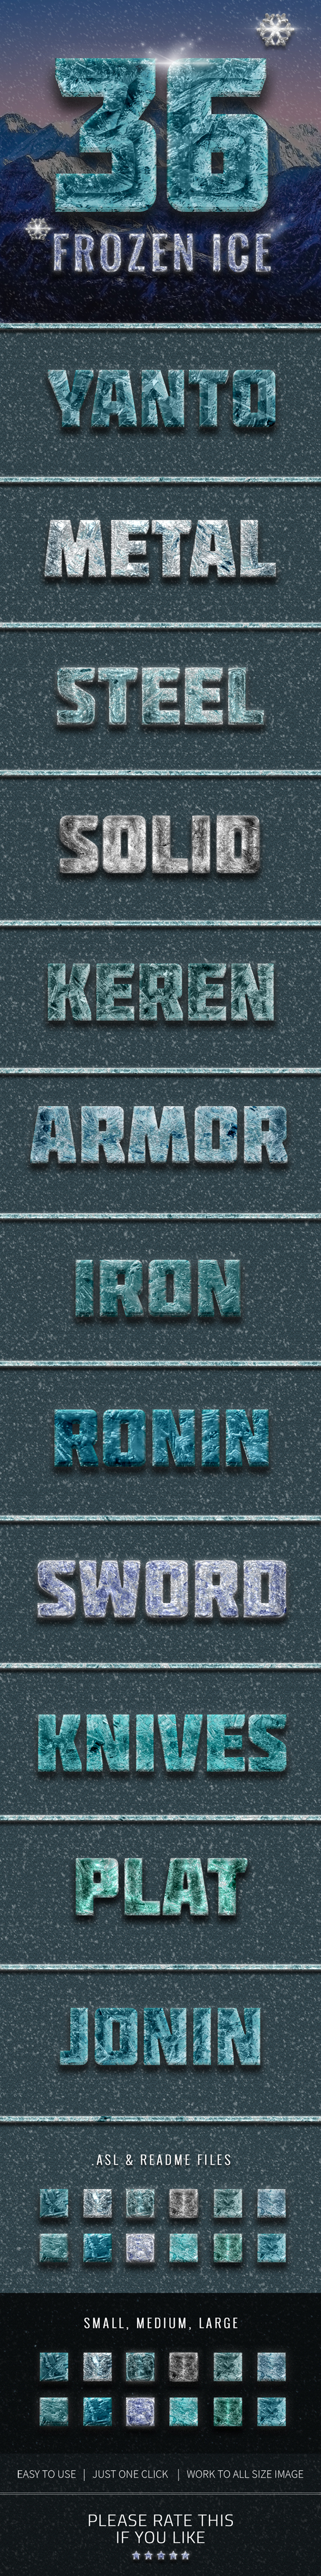 36 Frozen Ice Text Effect - Text Effects Styles